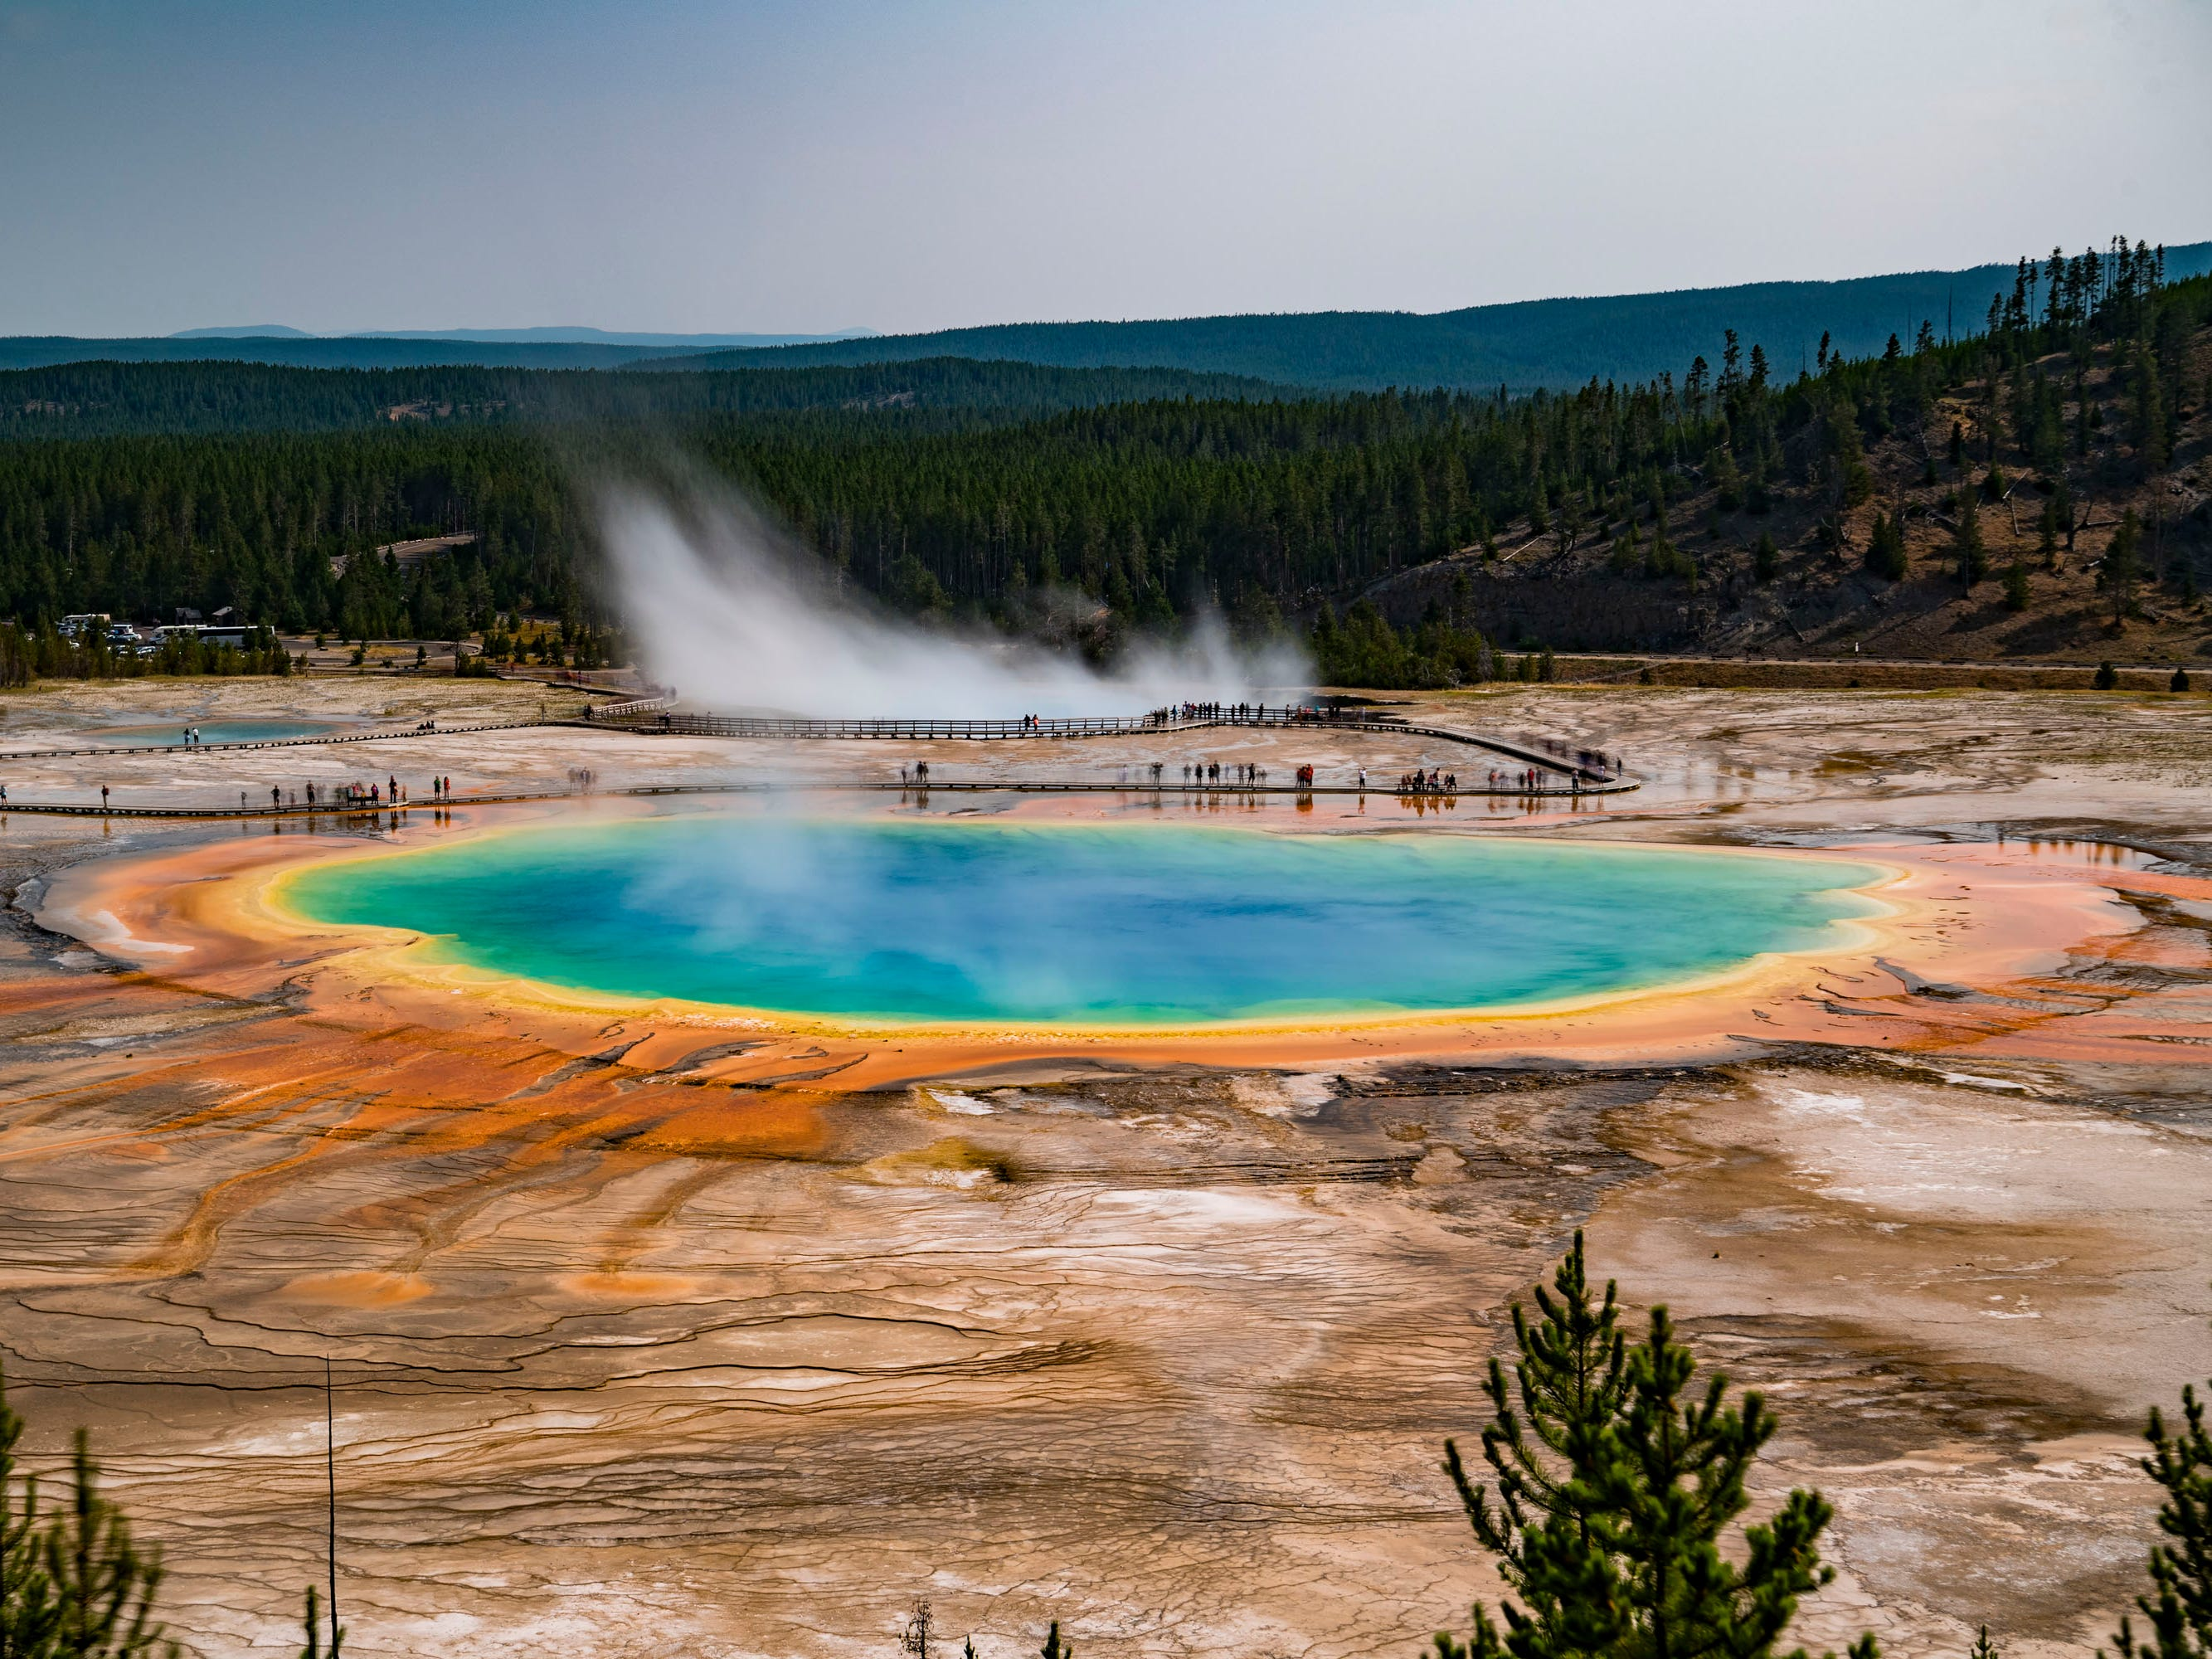 The tour includes a visit to the otherworldly Grand Prismatic Spring with its stunning rainbow of vibrant colors.